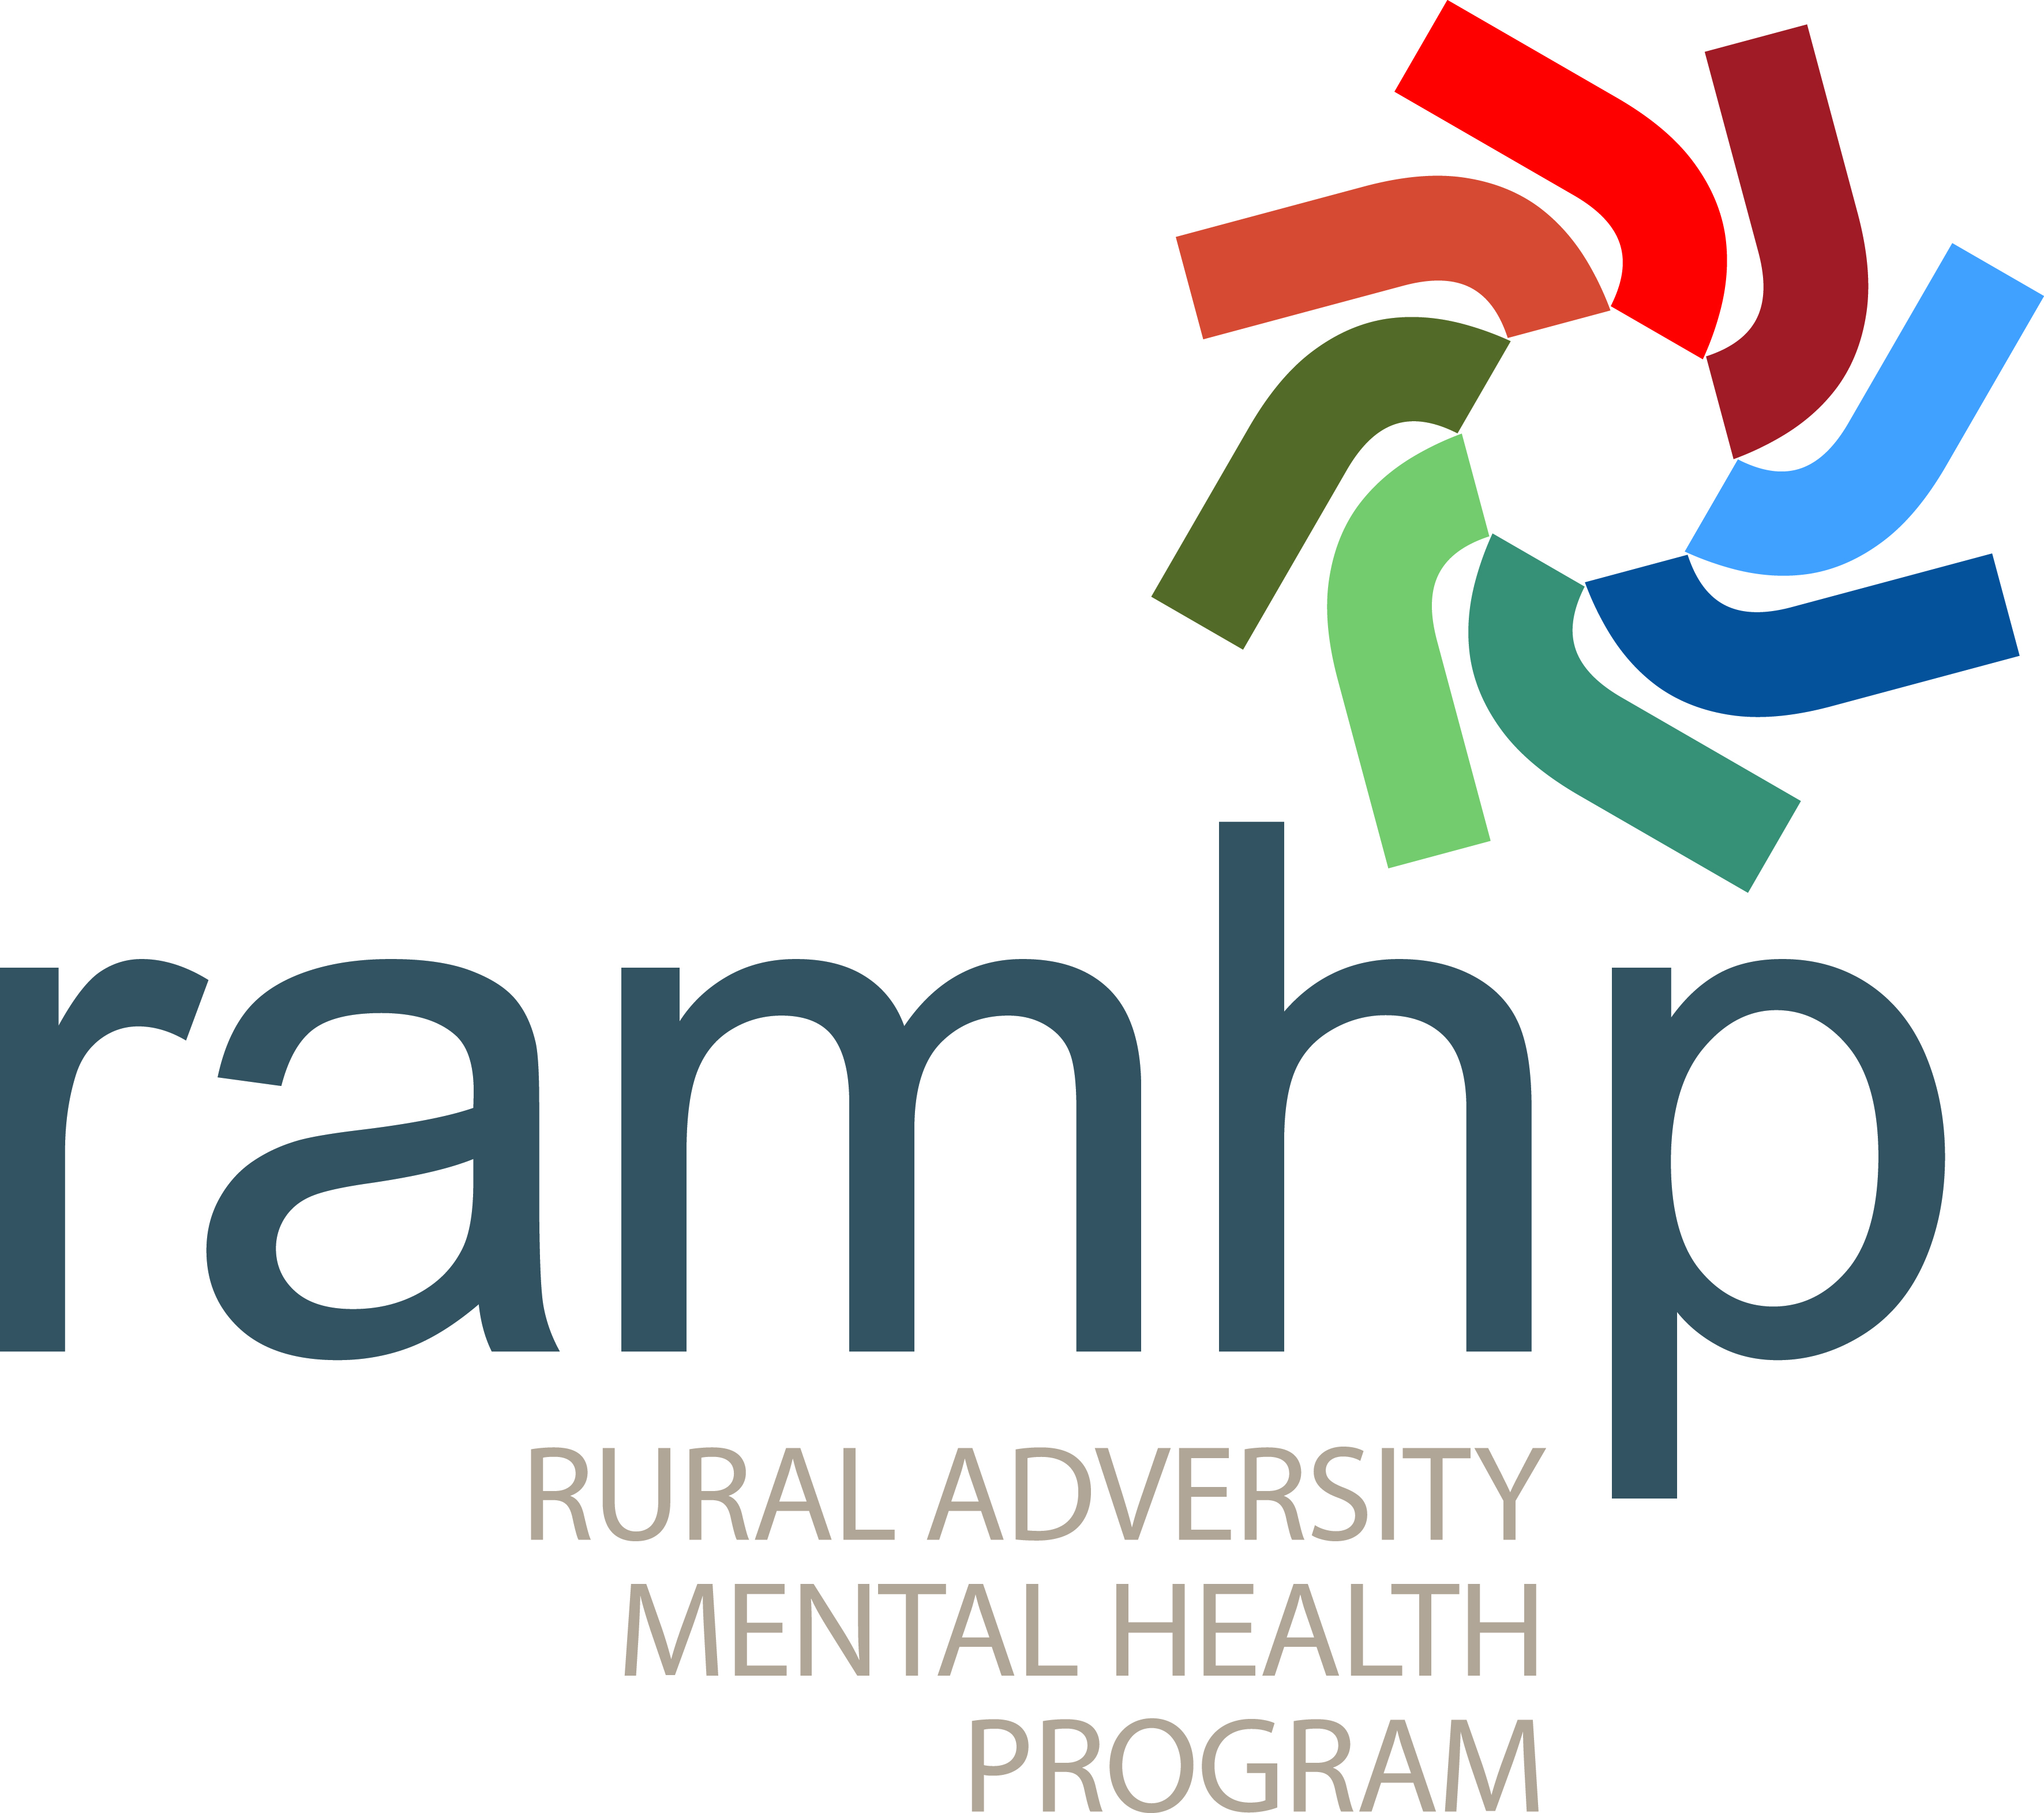 Rural Adversity Mental Health Program (RAMHP) logo